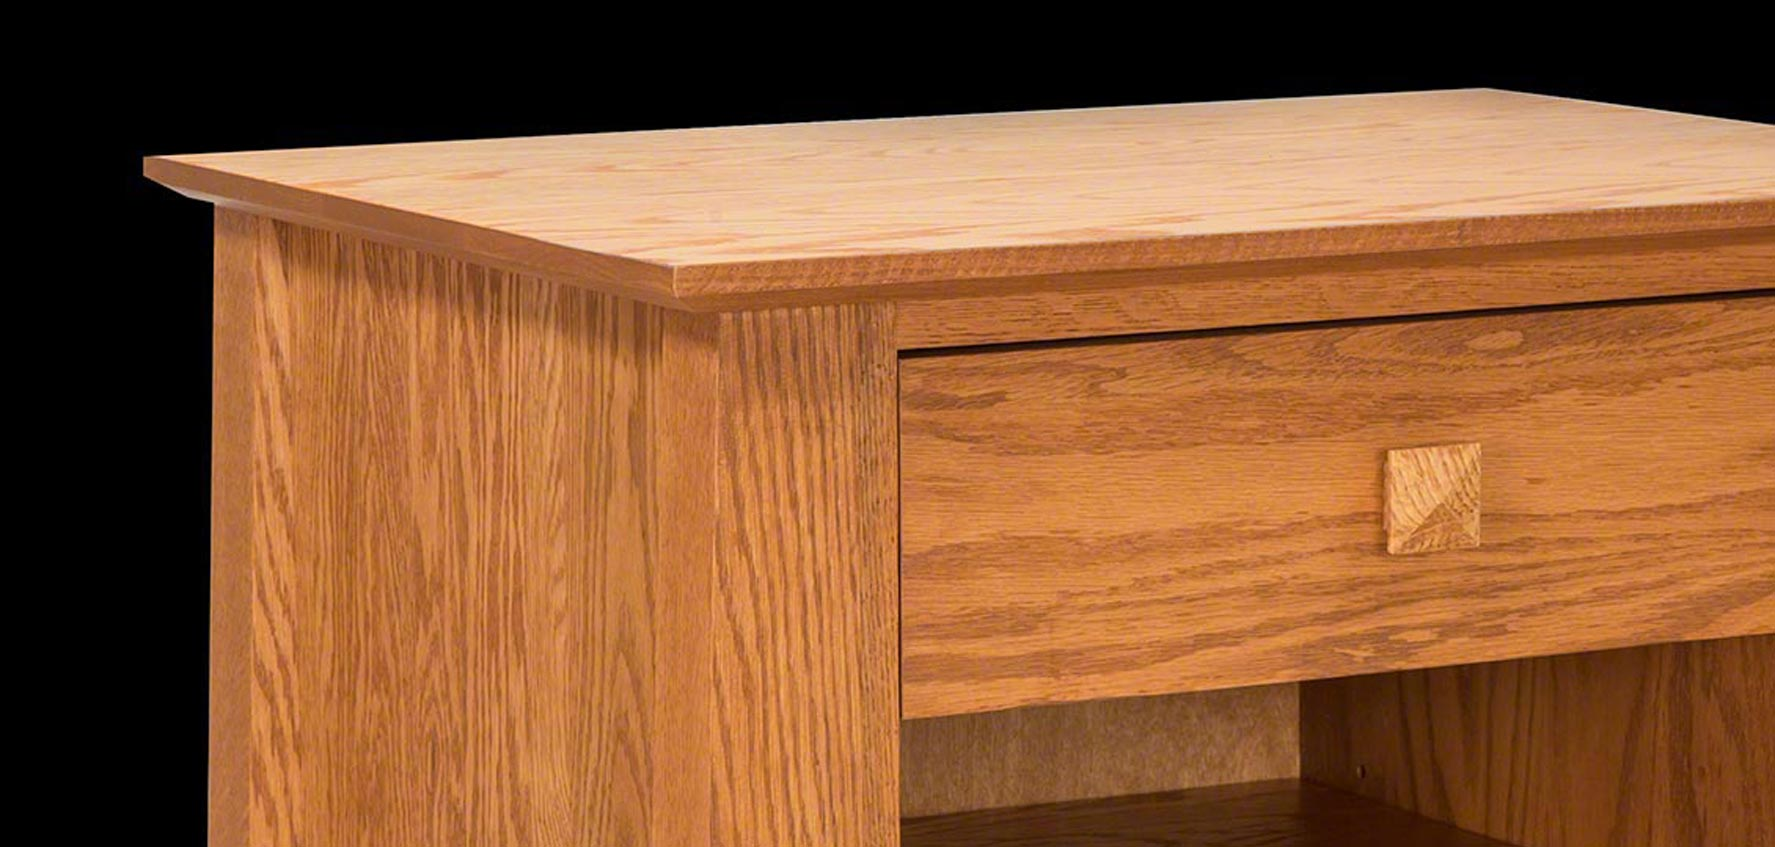 Oak wood furniture oak wood LOFPMDY